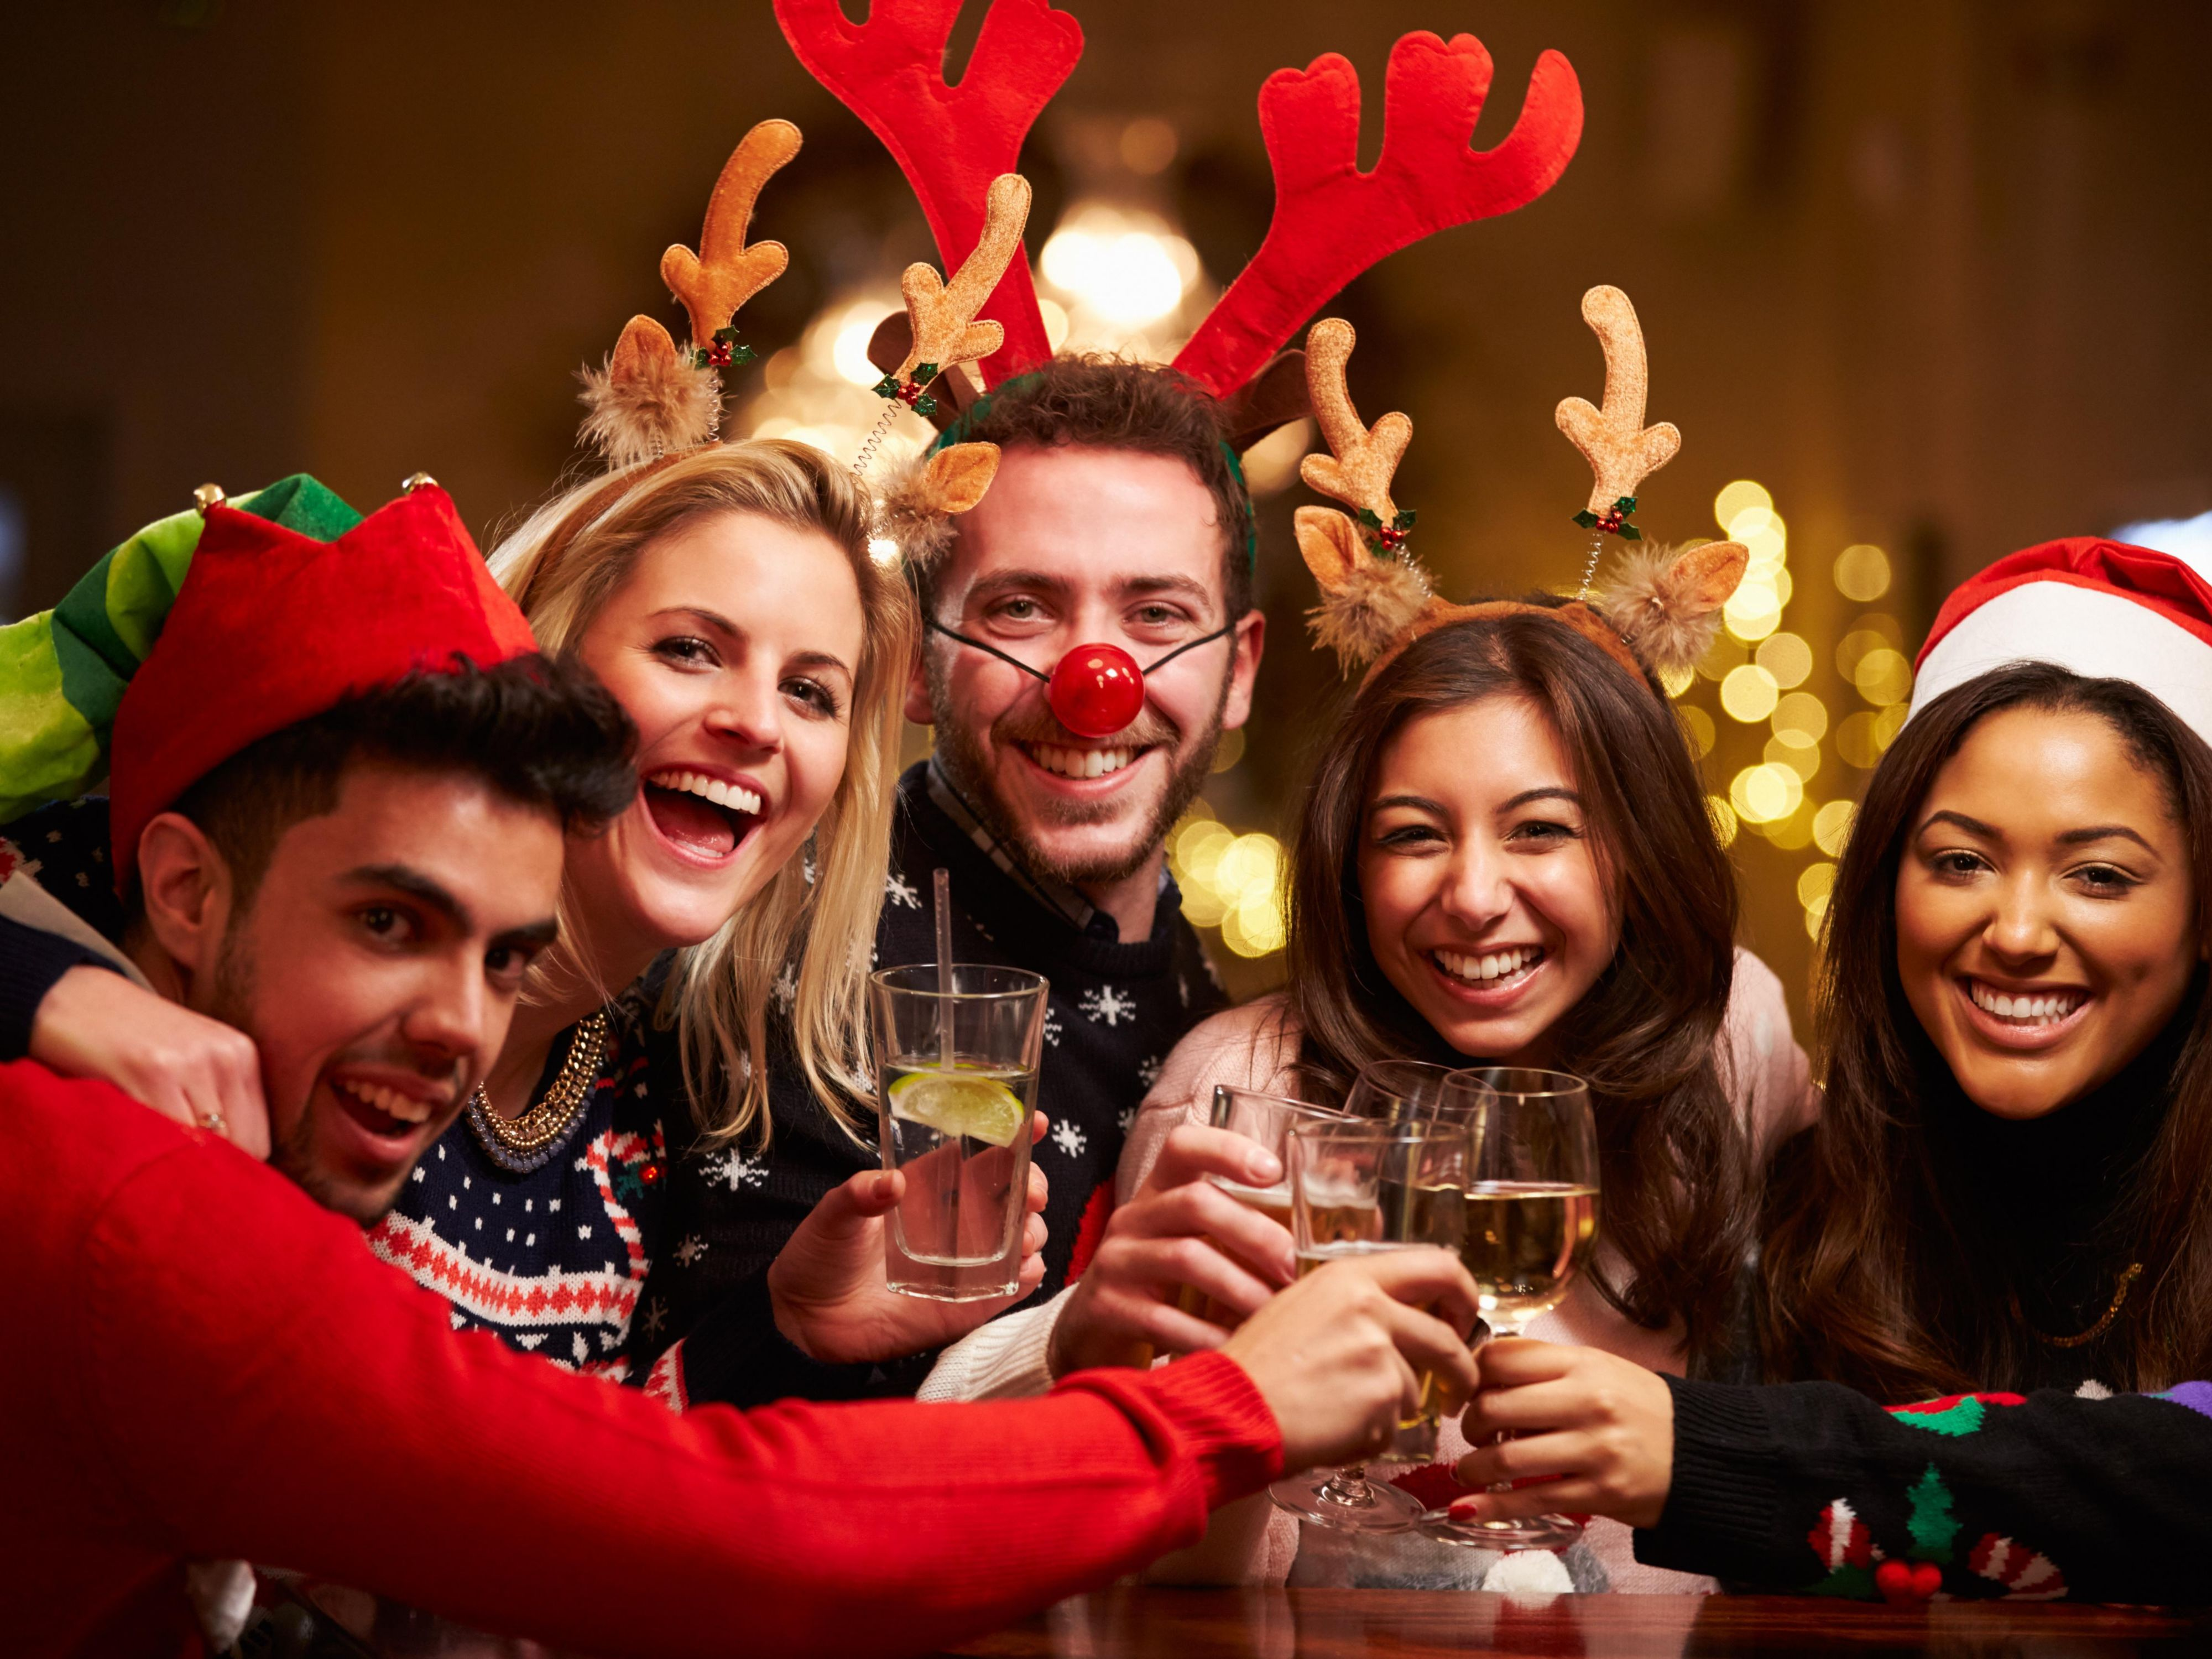 Celebrate Christmas and New Year